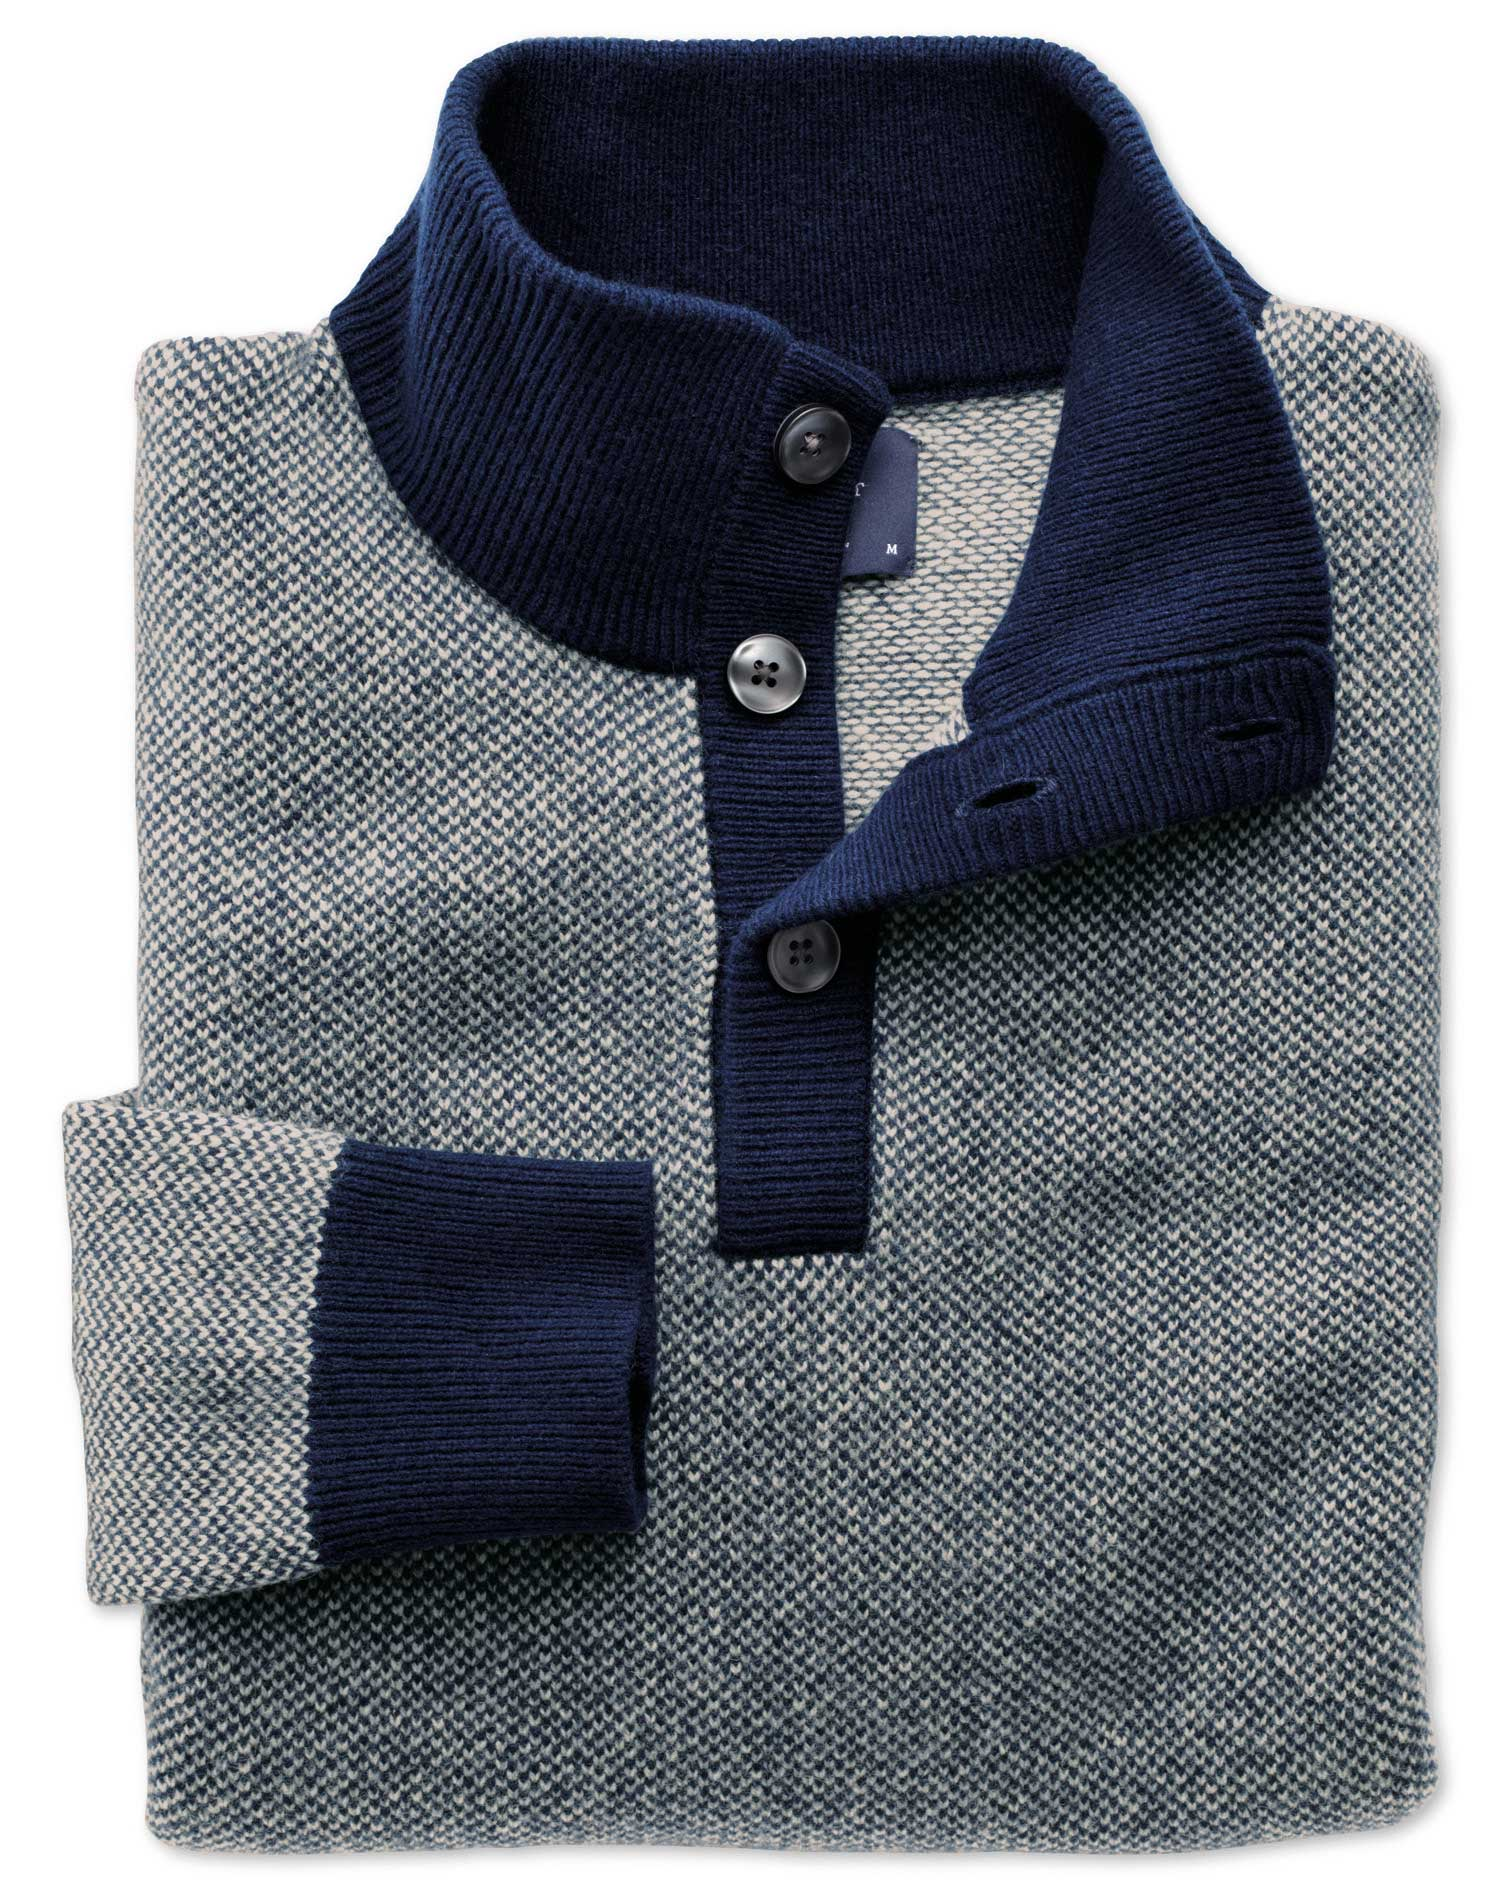 Blue Jacquard Button Neck Wool Jumper Size XXXL by Charles Tyrwhitt